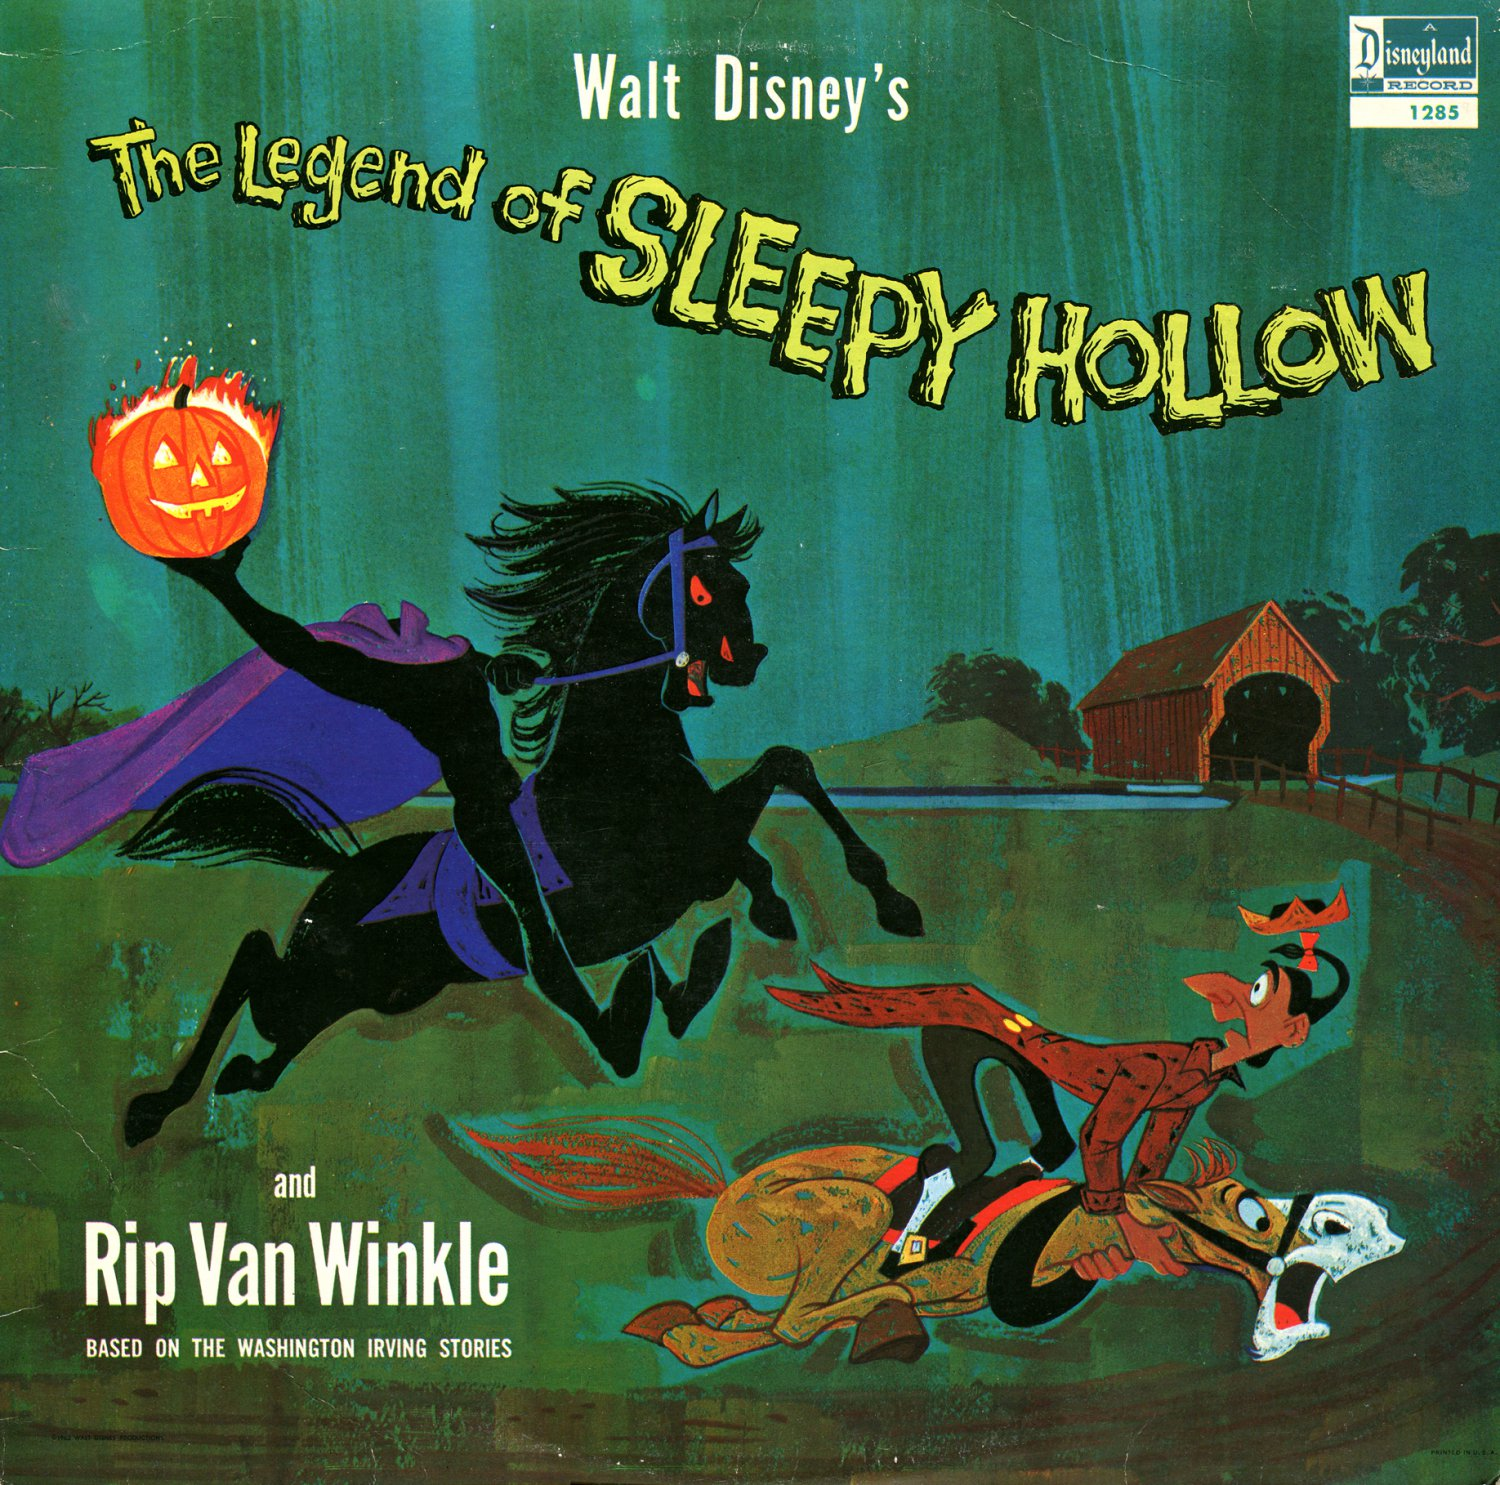 the legend of sleepy hollow plot diagram things fall apart walt disney story and songs